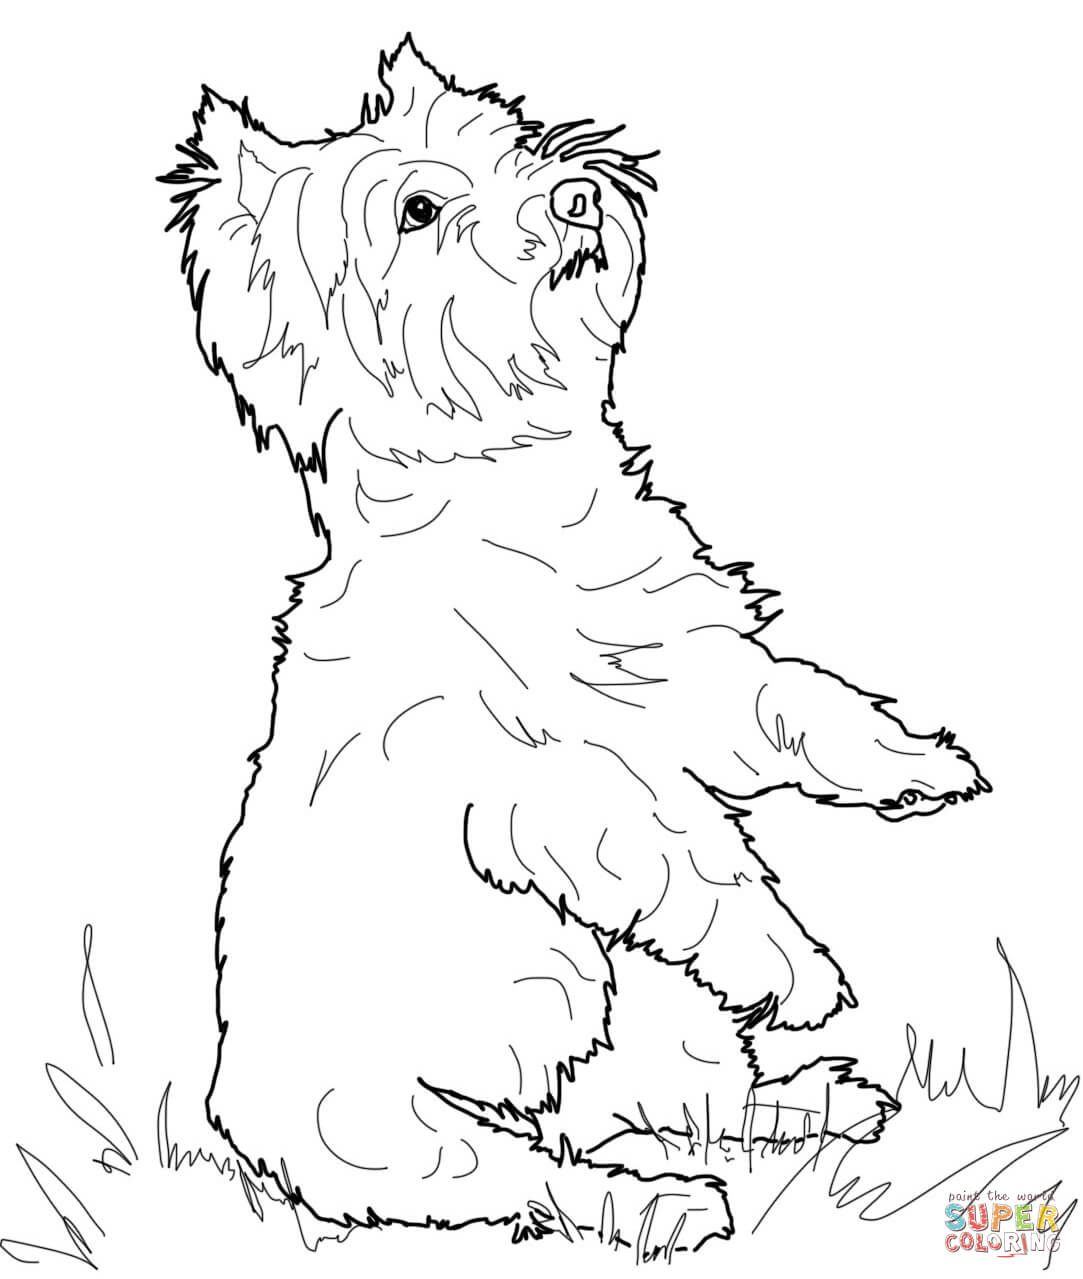 Uncategorized Yorkshire Terrier Coloring Pages yorkshire terrier or yorkie coloring page free printable printable